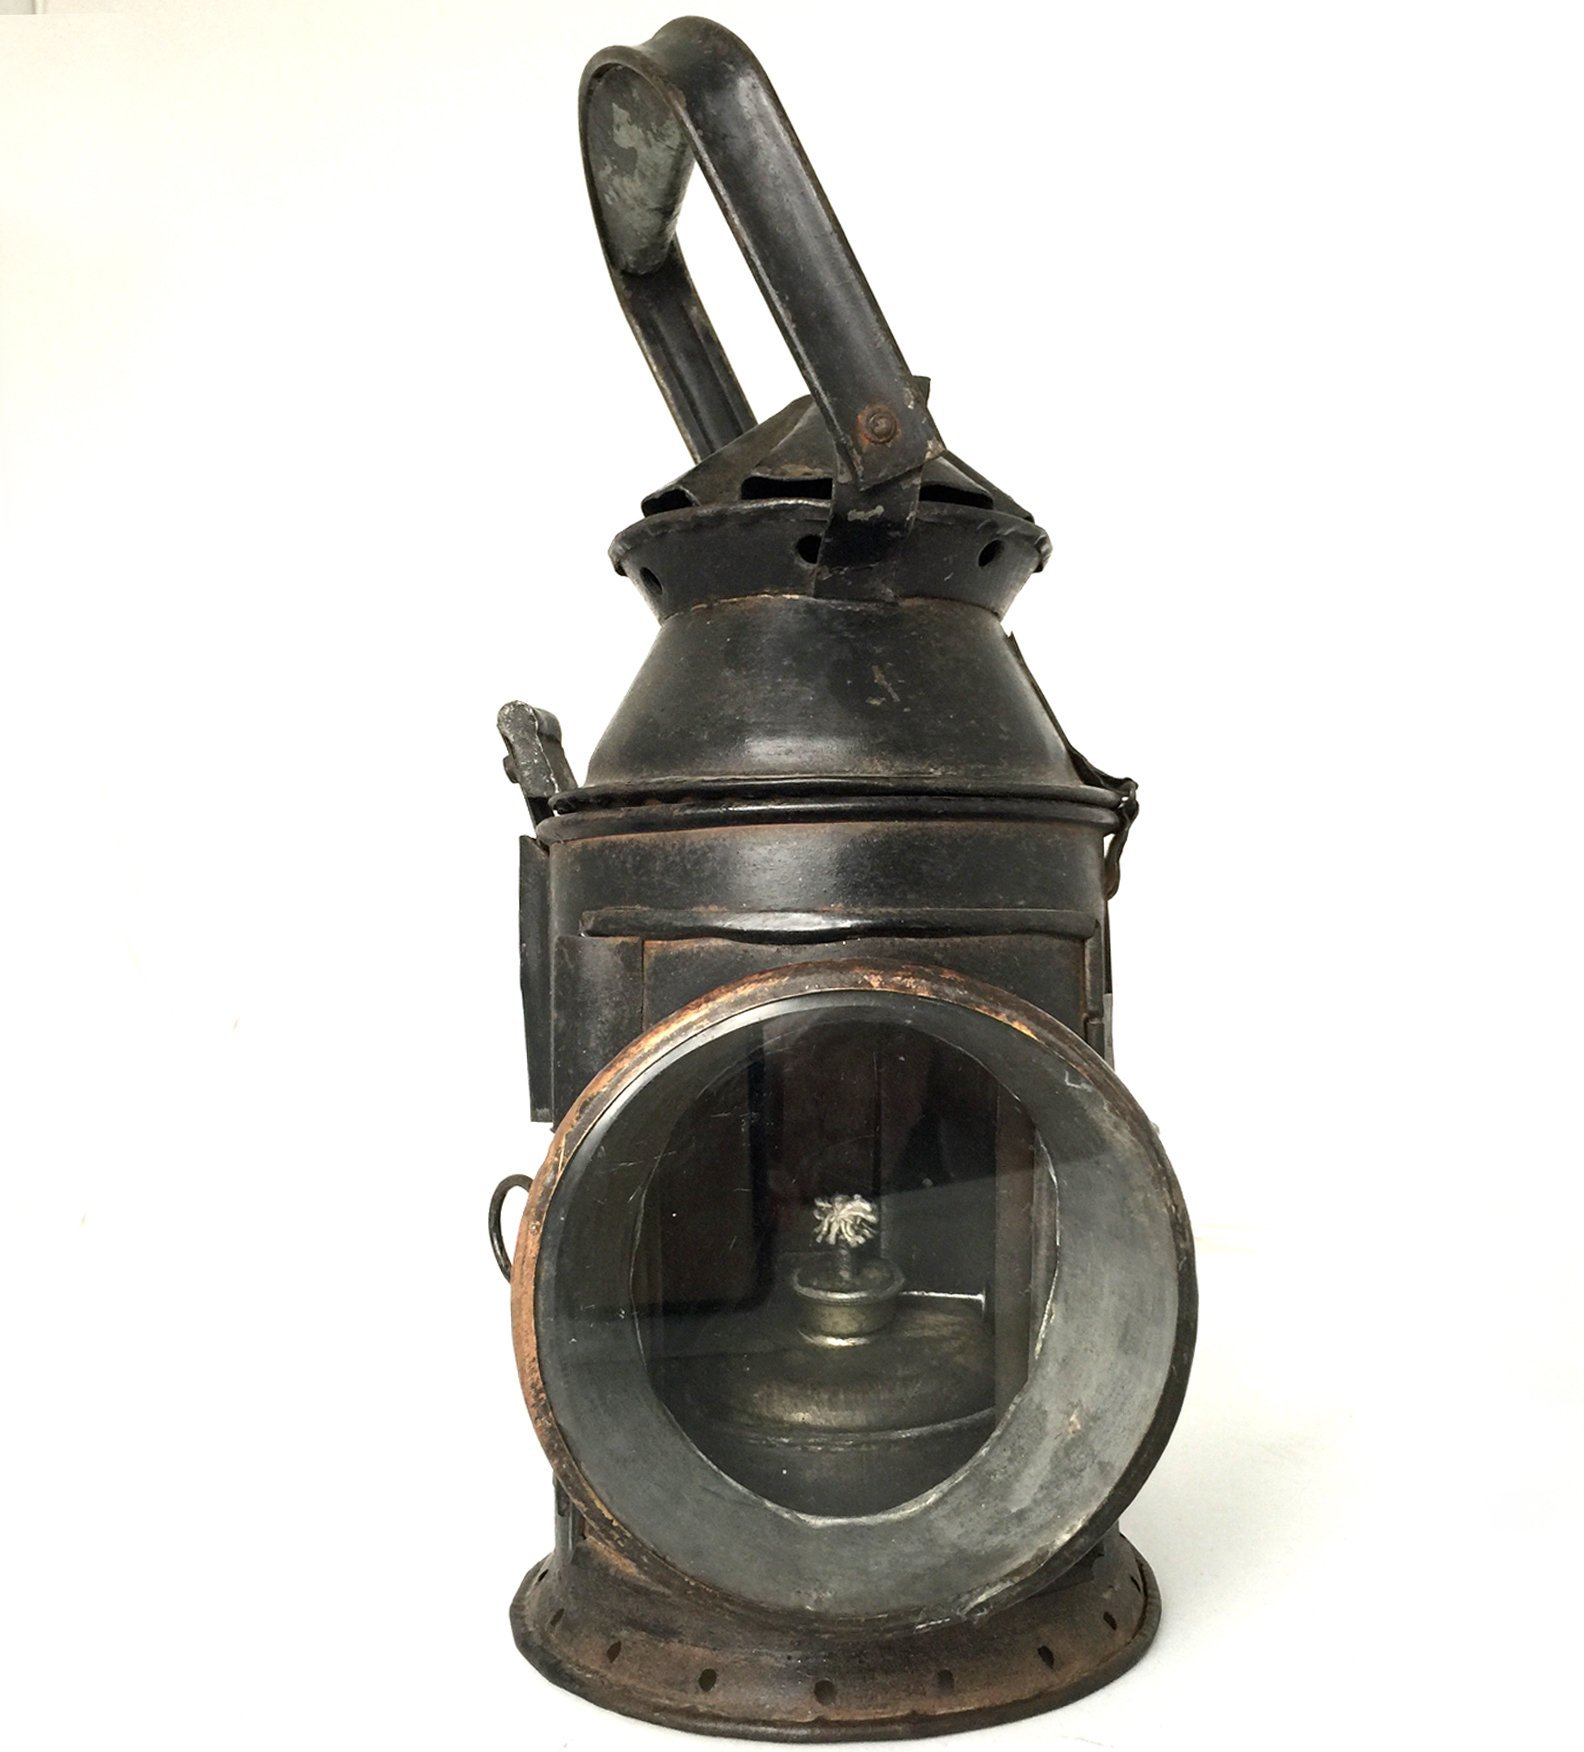 1000+ images about Railroad Lamps on Pinterest | Lanterns ...